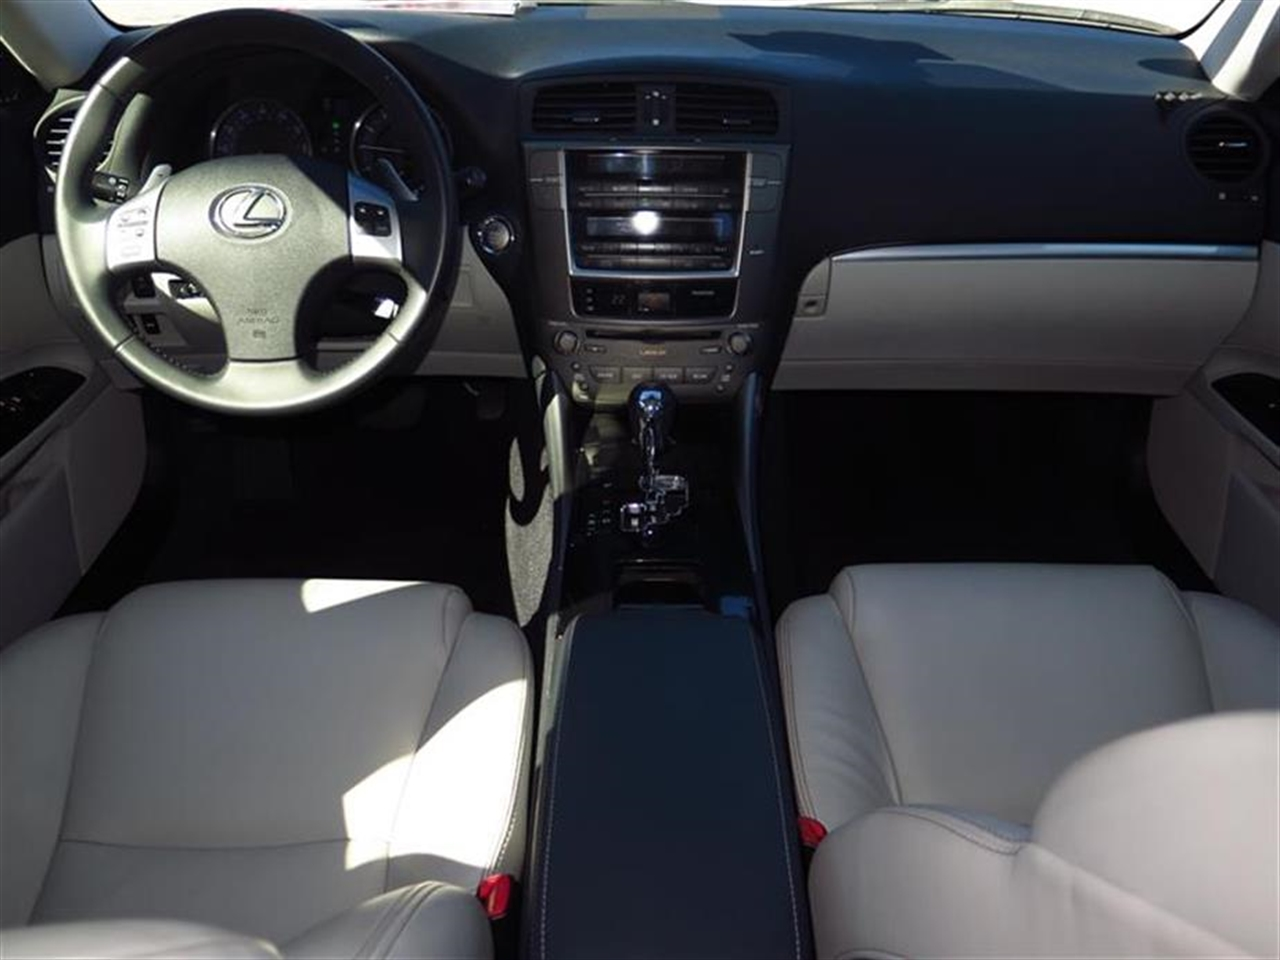 2012 LEXUS IS 250 4dr Sport Sdn Auto RWD 35192 miles 2 front2 rear articulated assist grips